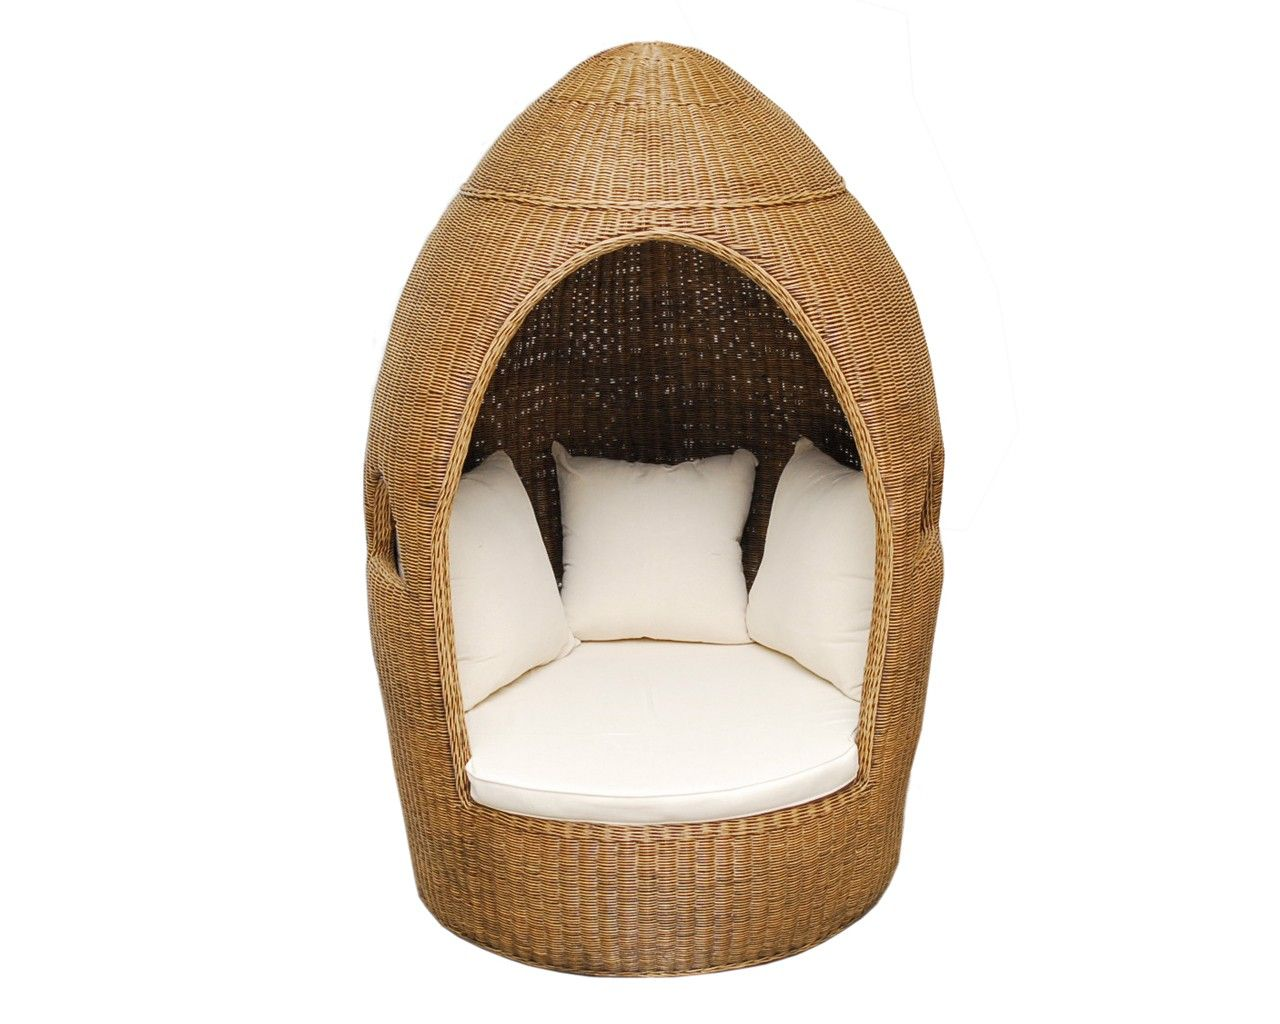 Marvelous Rattan Egg Chair. GRS Says: THIS Is The Chair Of My Dreams. Ever